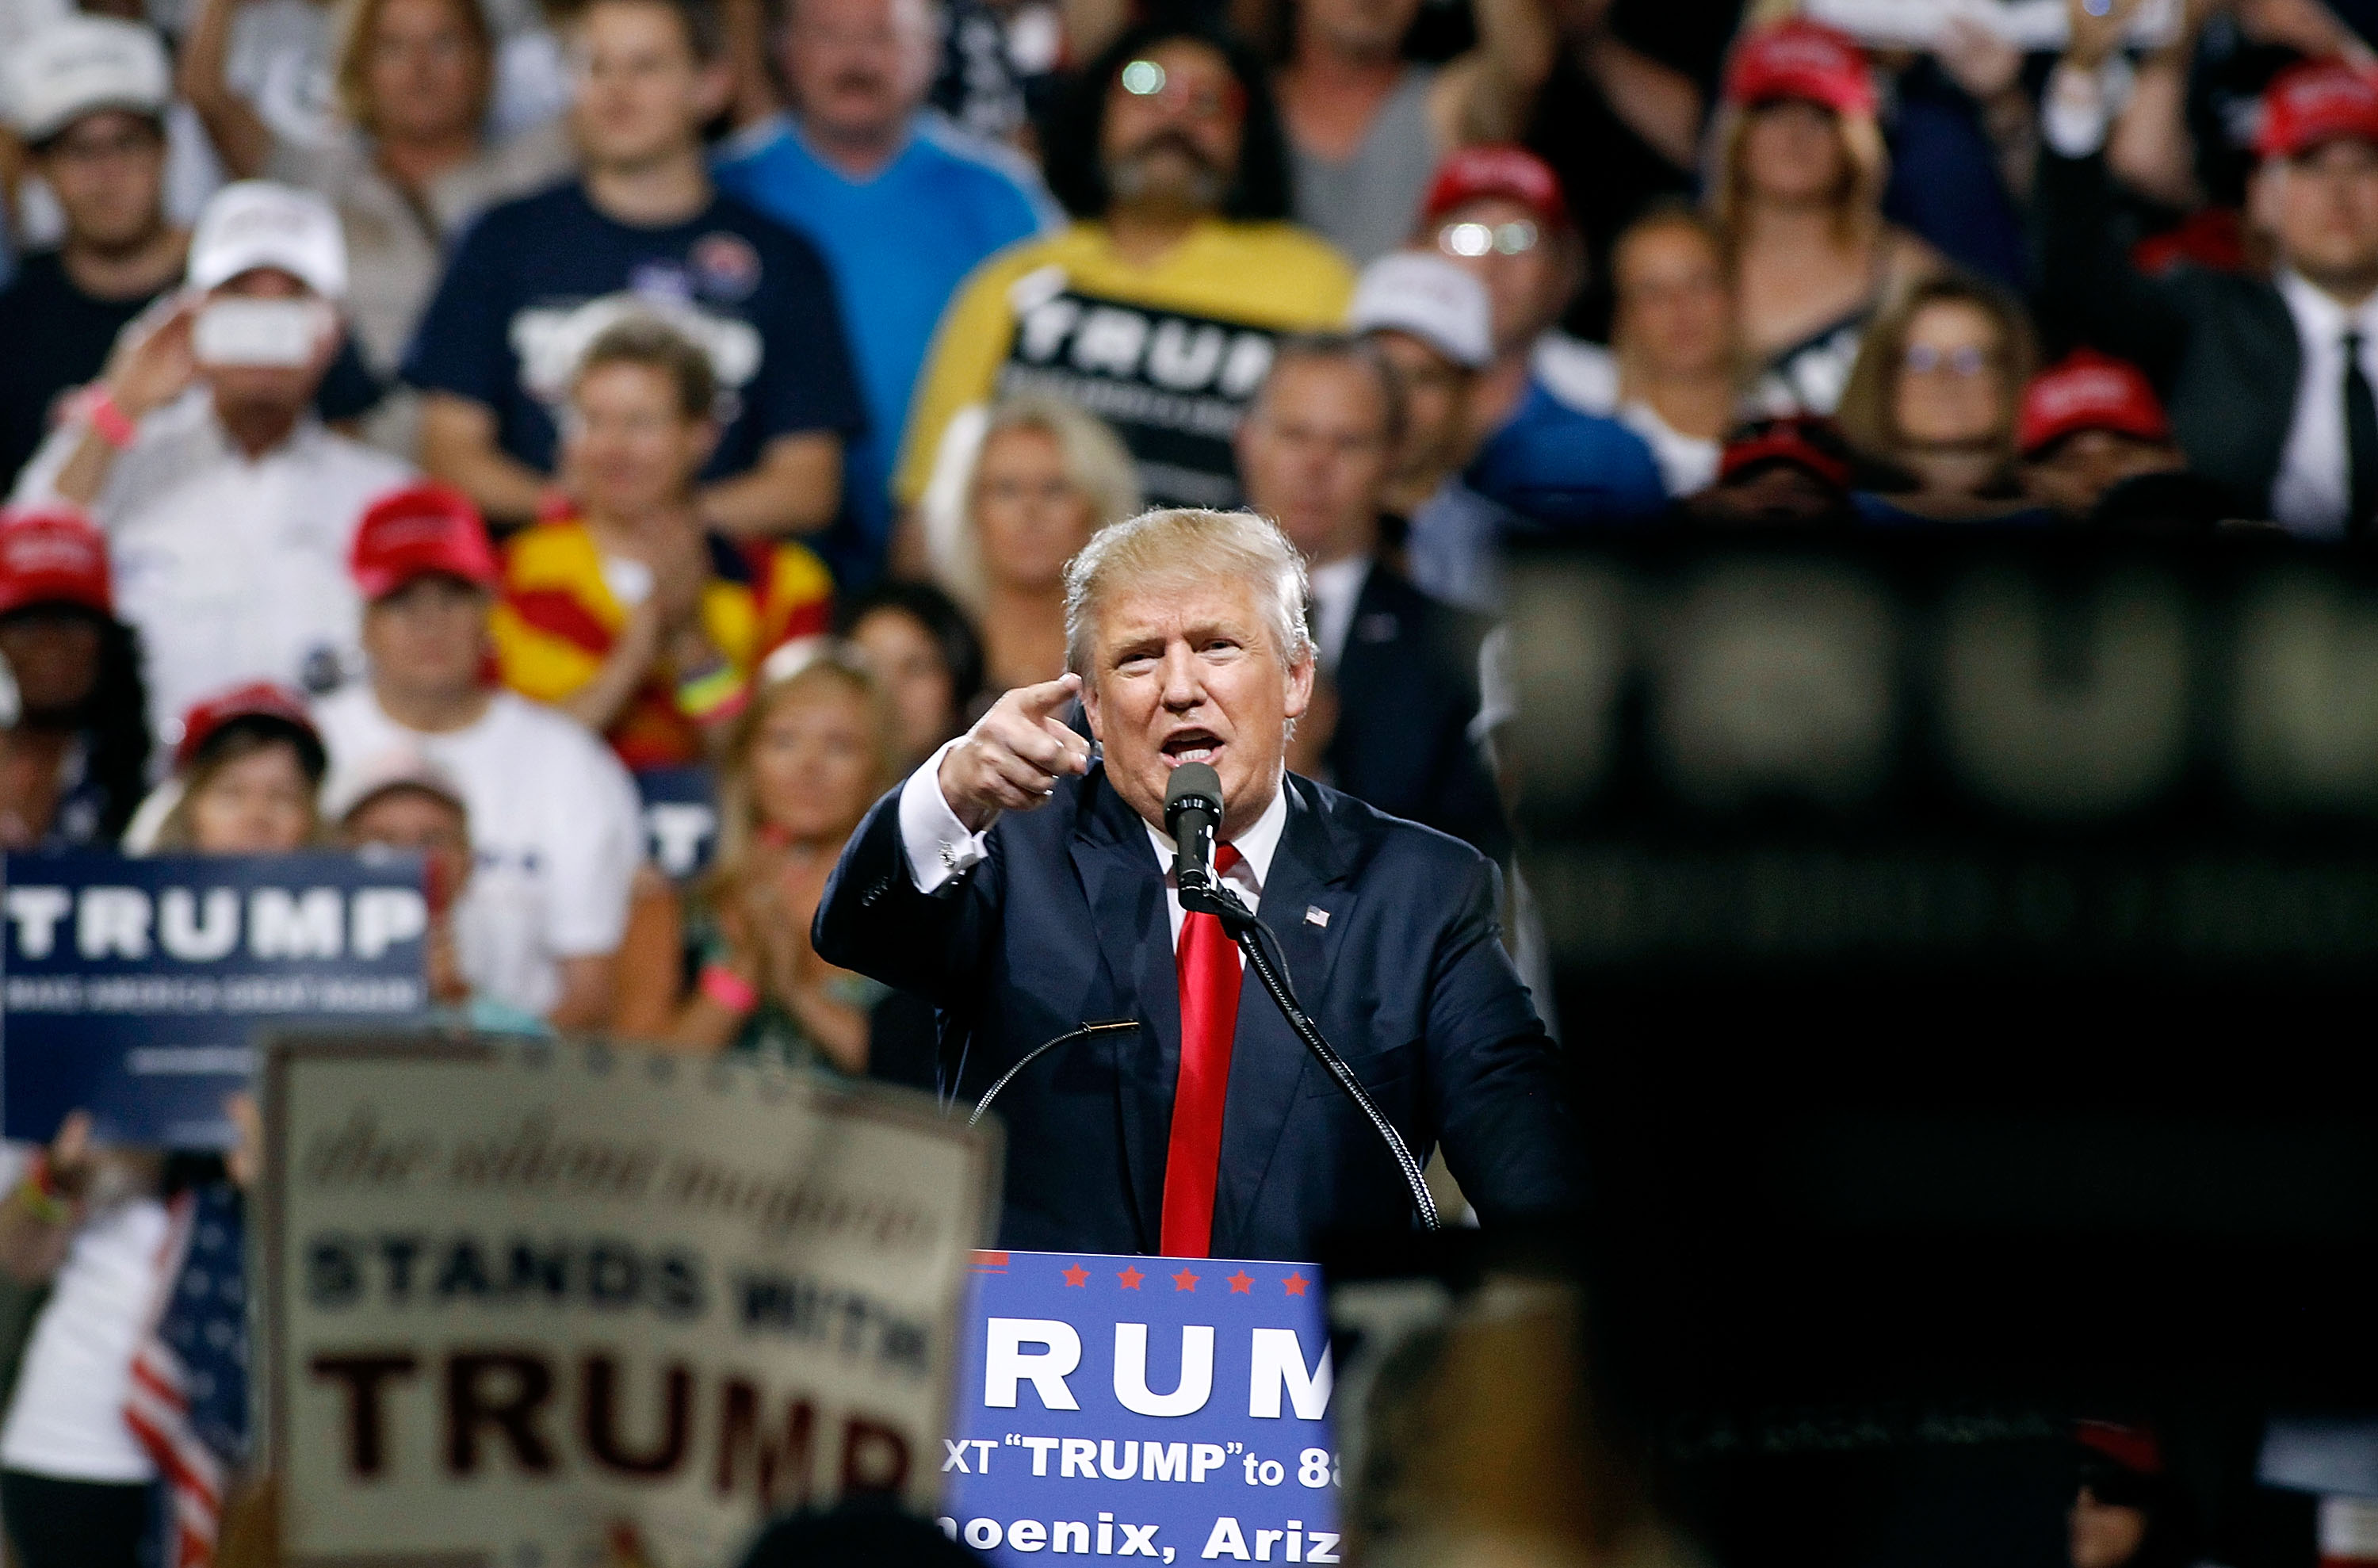 Republican presidential candidate Donald Trump speaks to a crowd of supporters during a campaign rally on June 18, 2016 in Phoenix, Arizona.